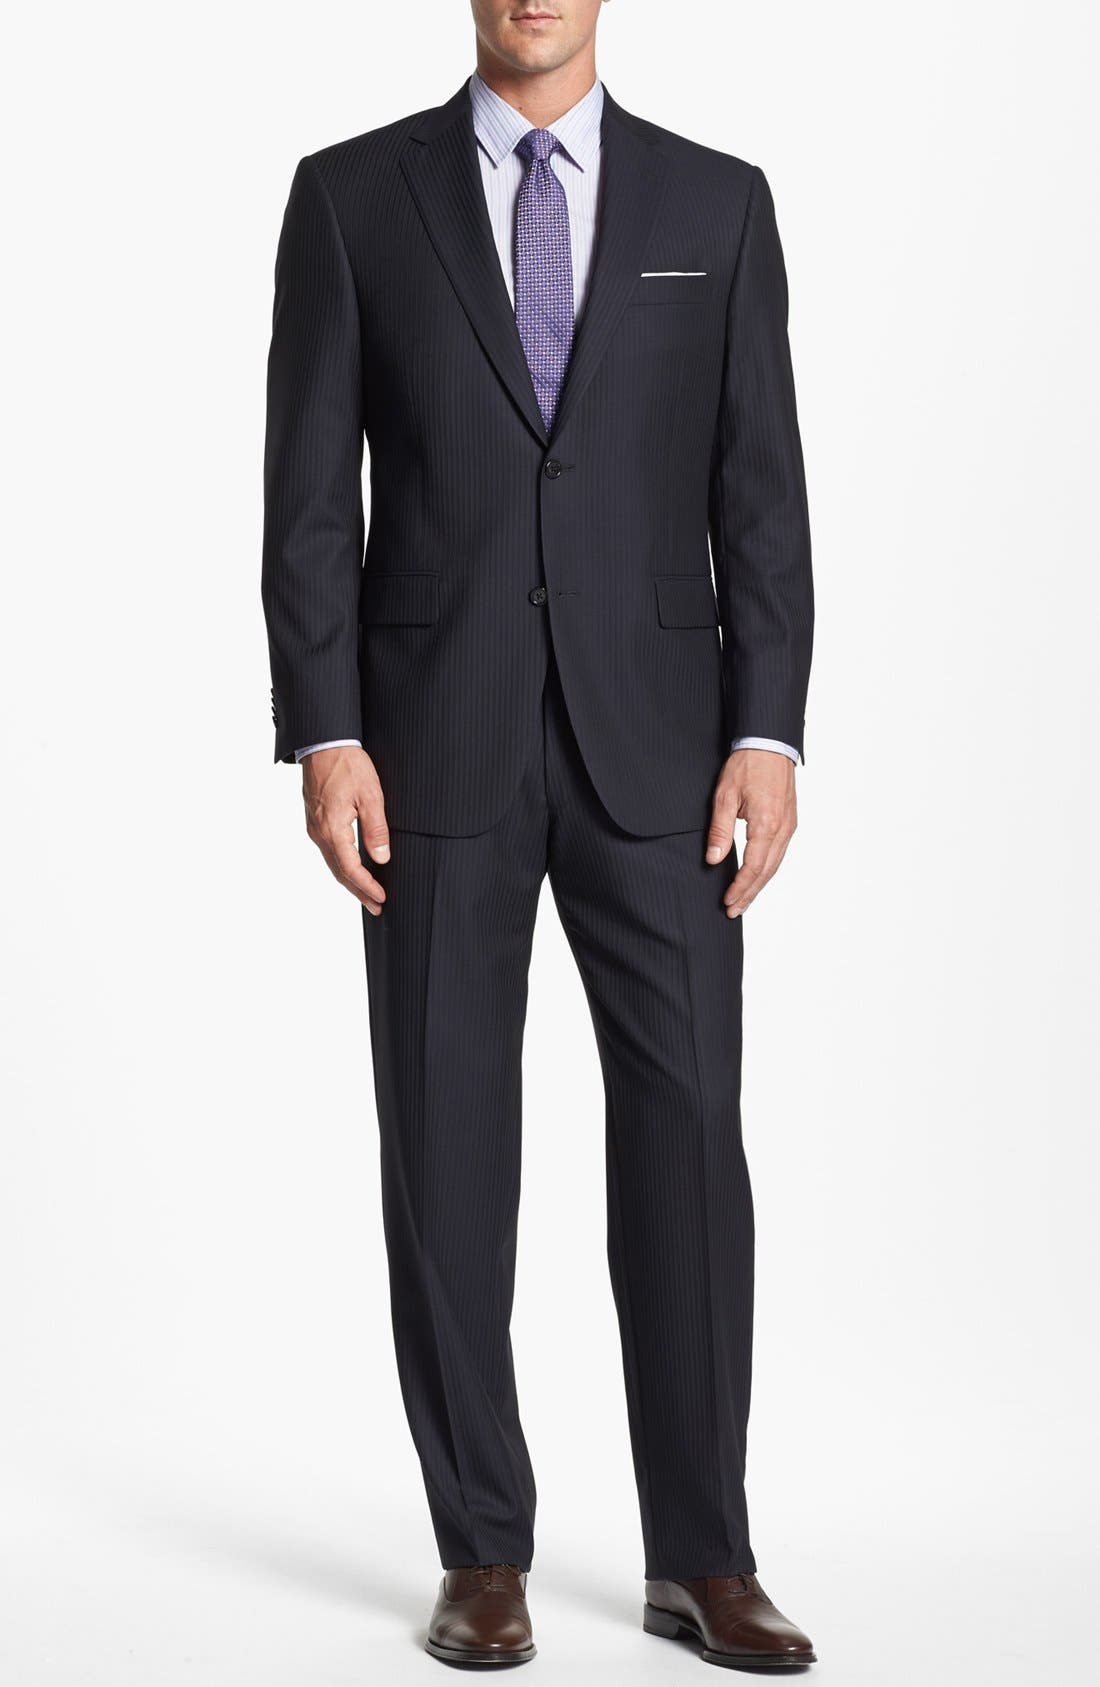 Alternate Image 1 Selected - 2BT SV STRIPE SUIT W/ FLAT FRONT TROUSER CLASSIC